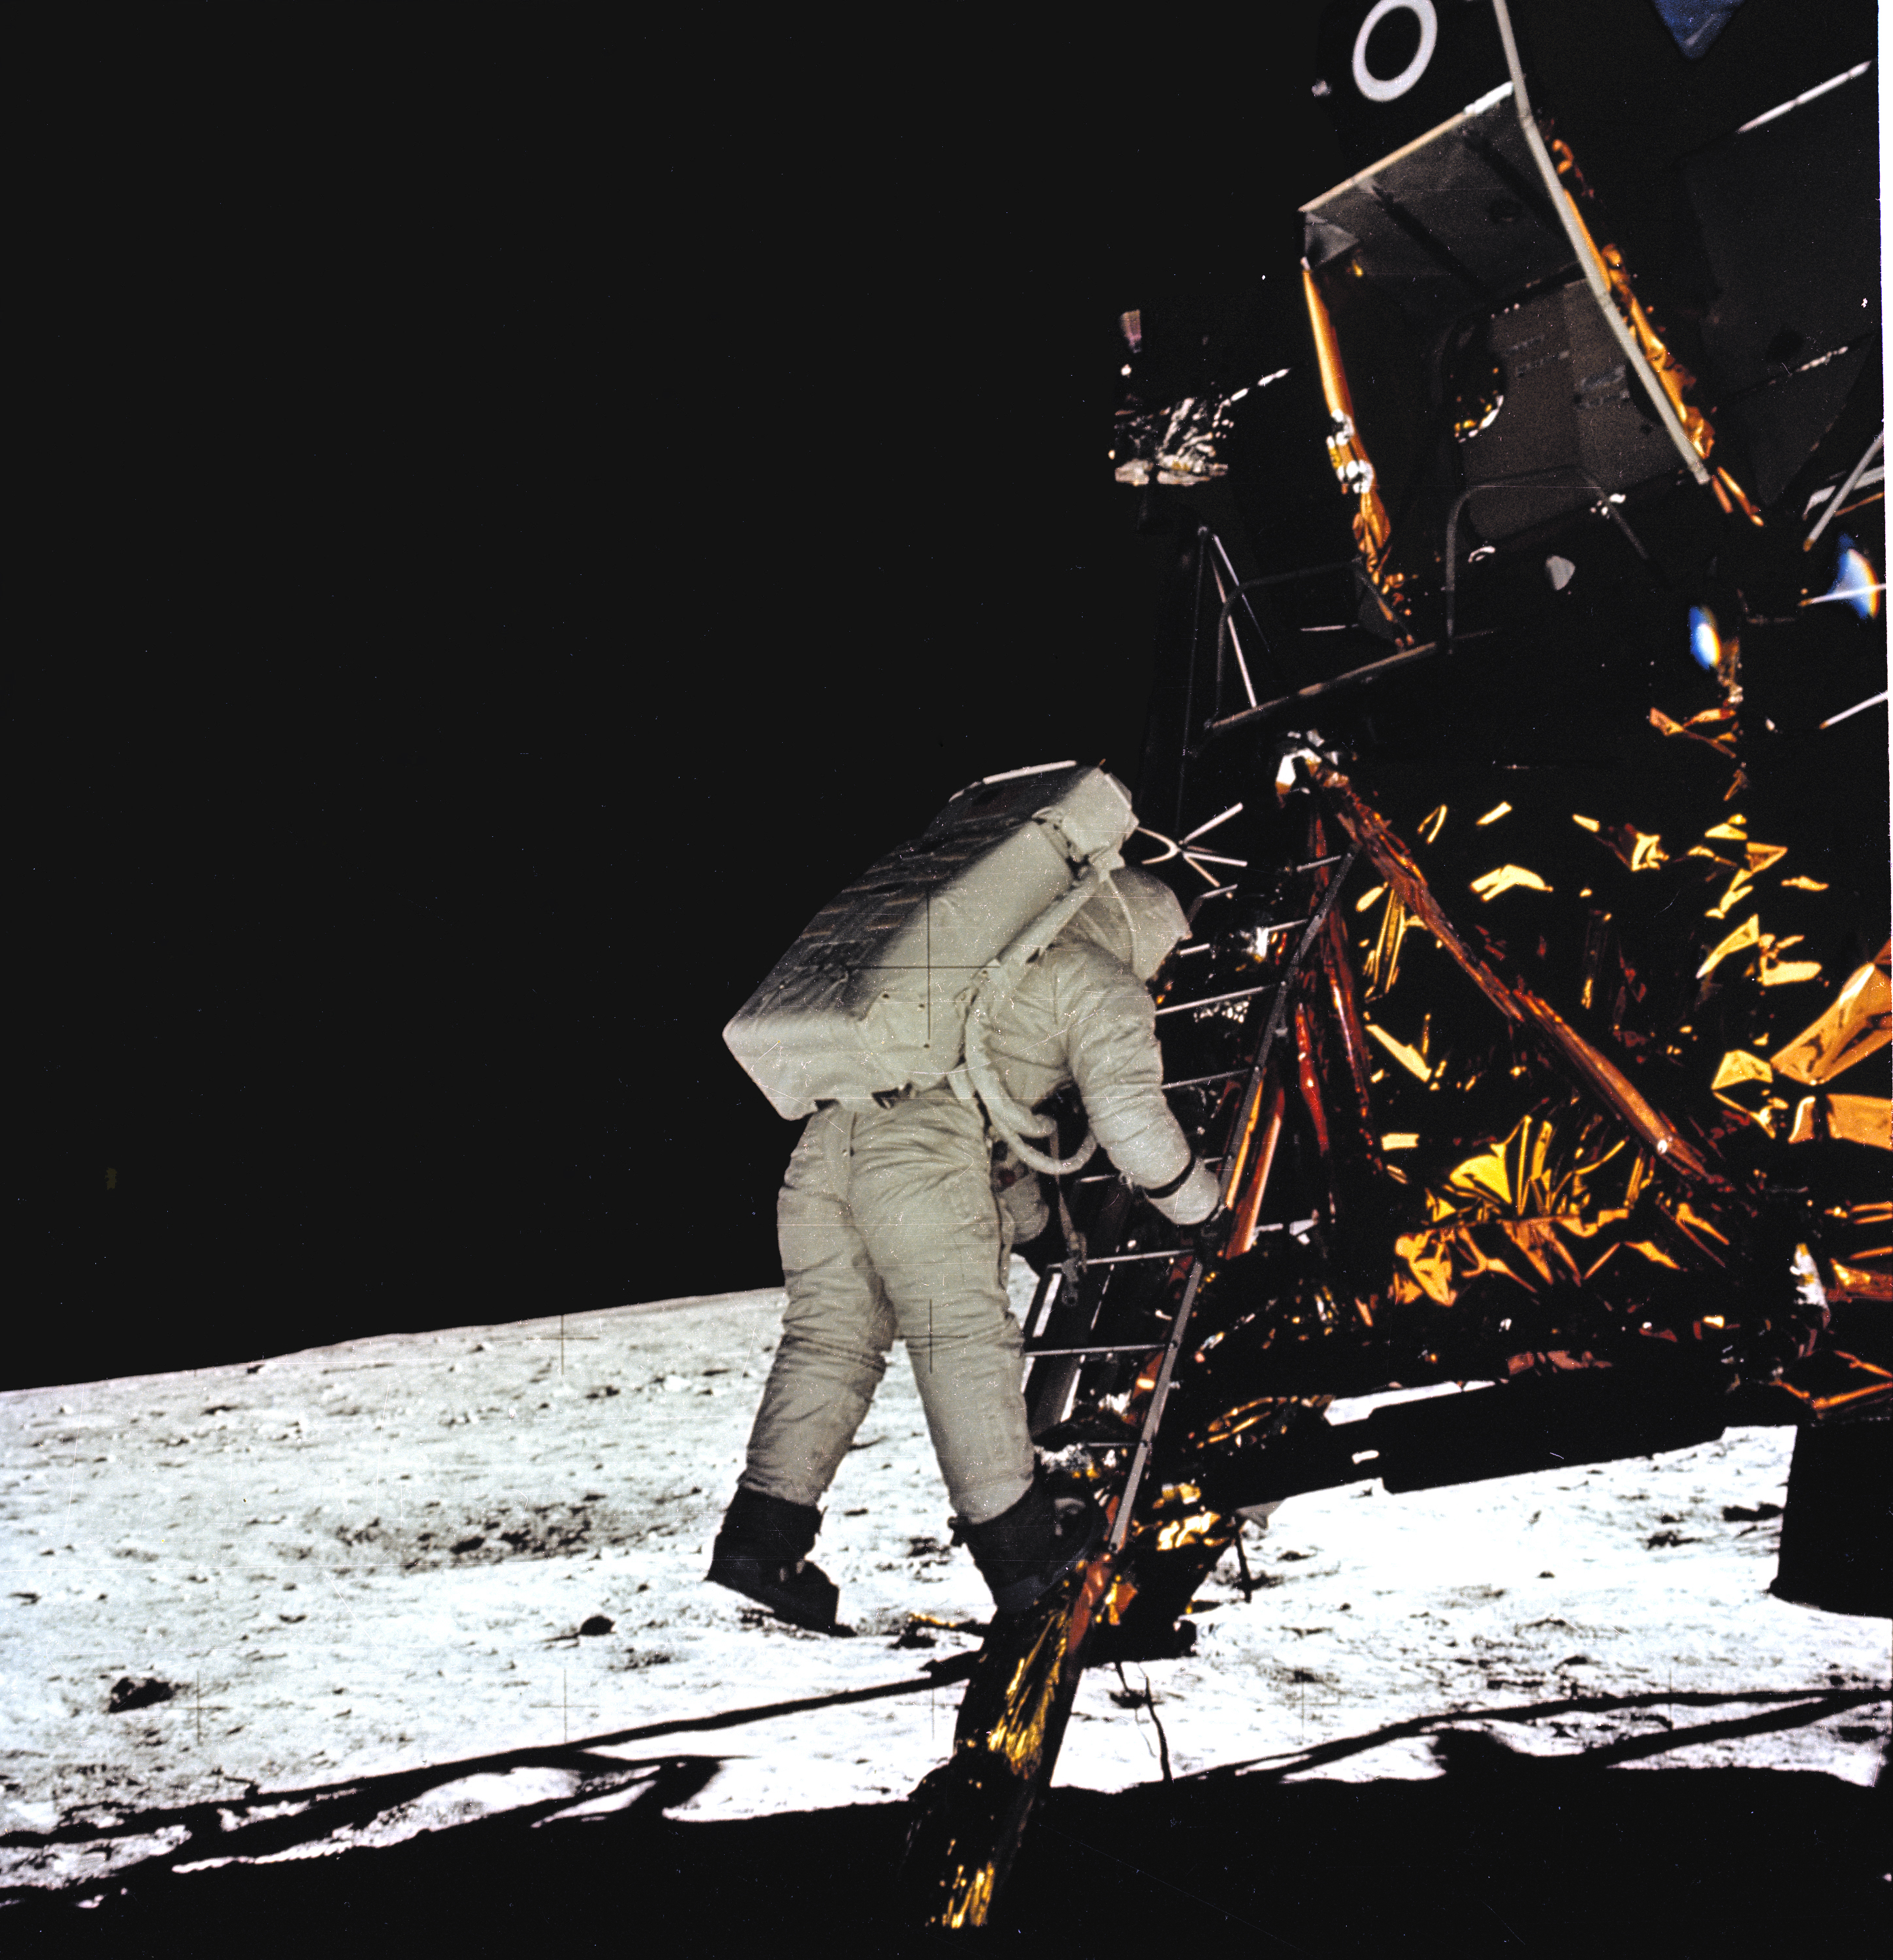 Astronaut Buzz Aldrin slowly descends down the steps of the Eagle lunar lander